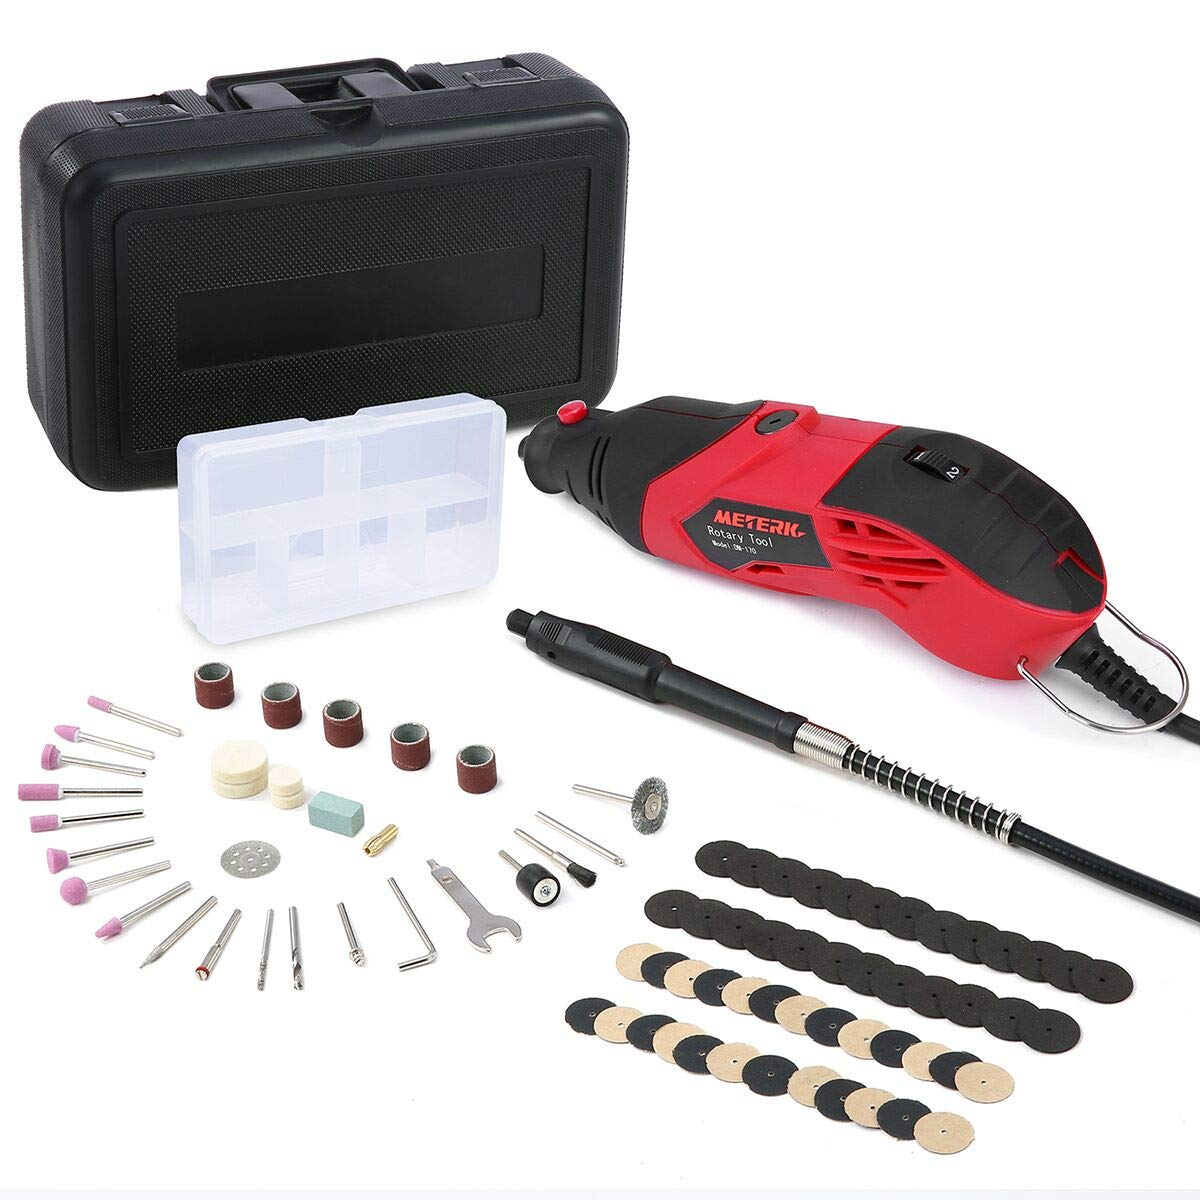 Meterk Rotary Tool Kit, 170W, 8,000 to 35,000 RPM,6-Speed with Flex shaft, 85Pcs Carrying Case, Electric Grinder, Engraver, Sander, and Polisher for Milling Sanding Sharpening Carving,etc